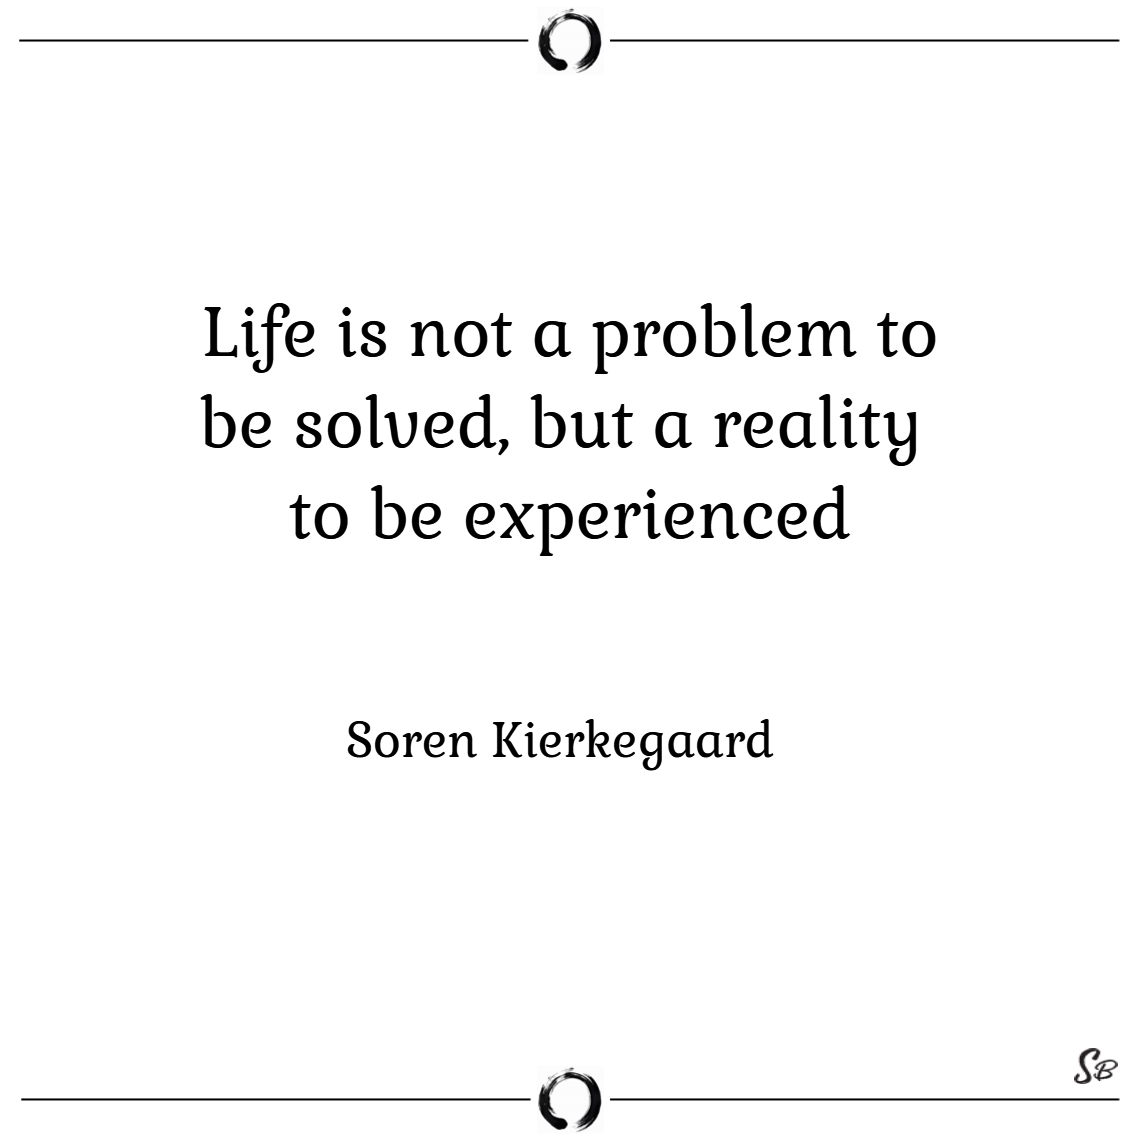 Life is not a problem to be solved, but a reality